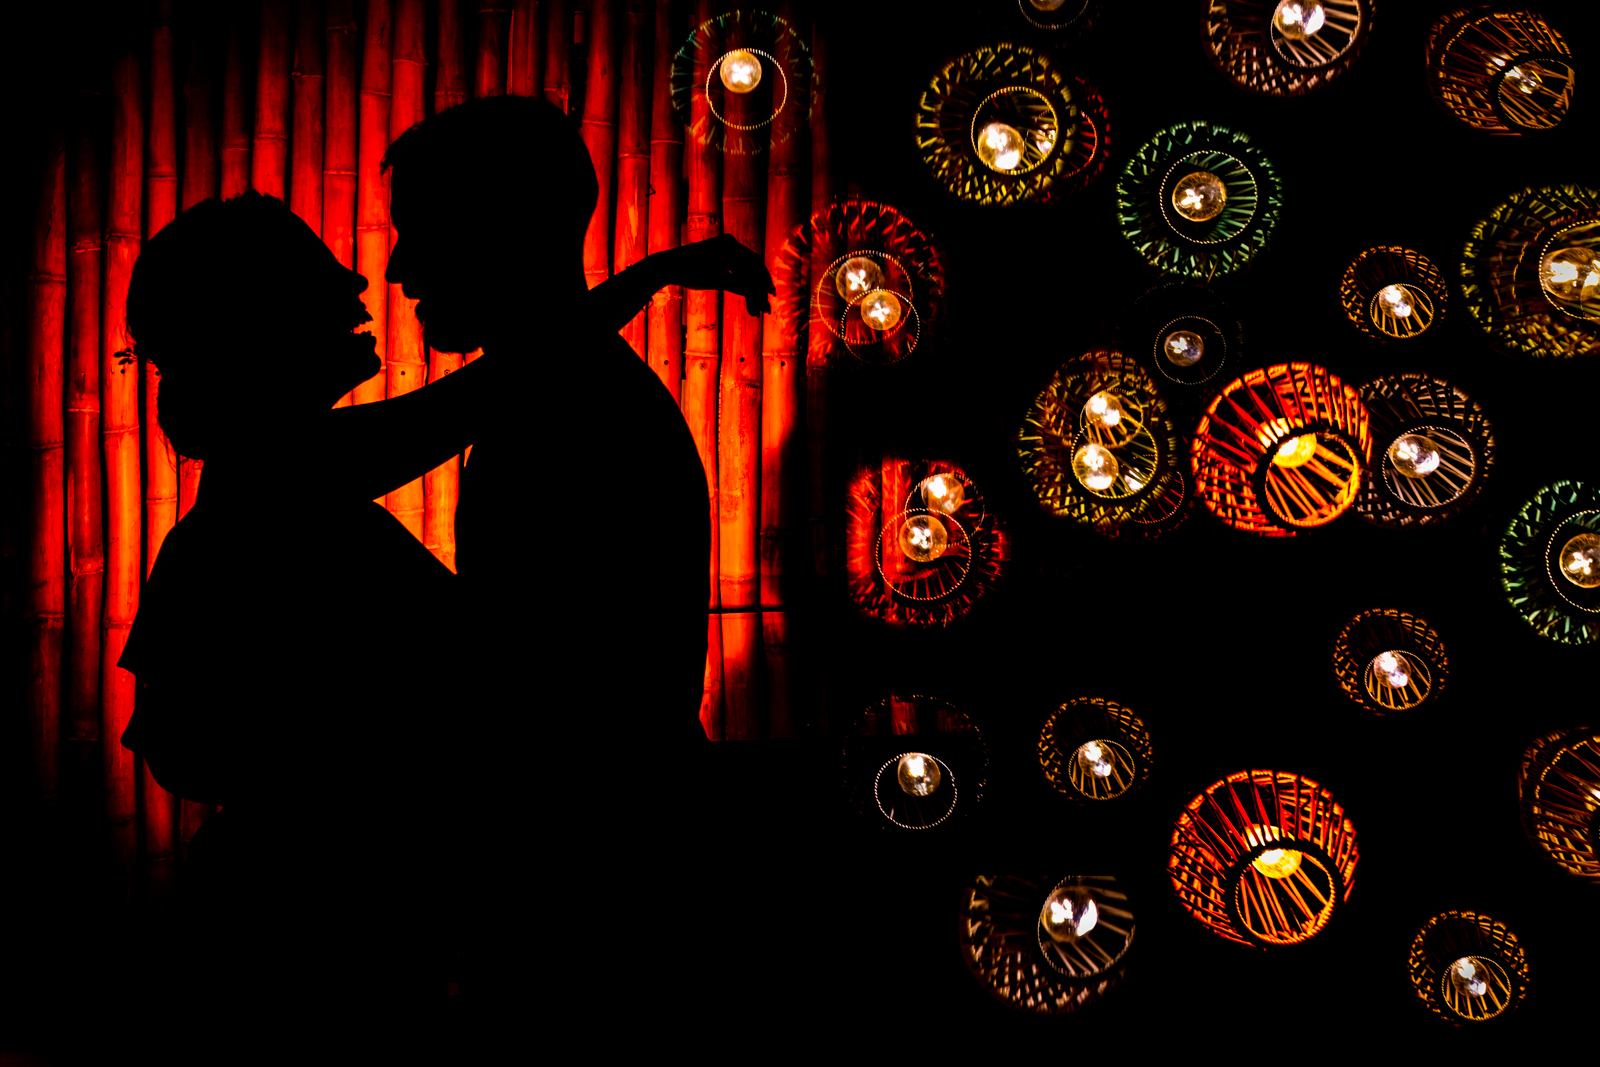 silhouette light bride and groom red wall, bride smile